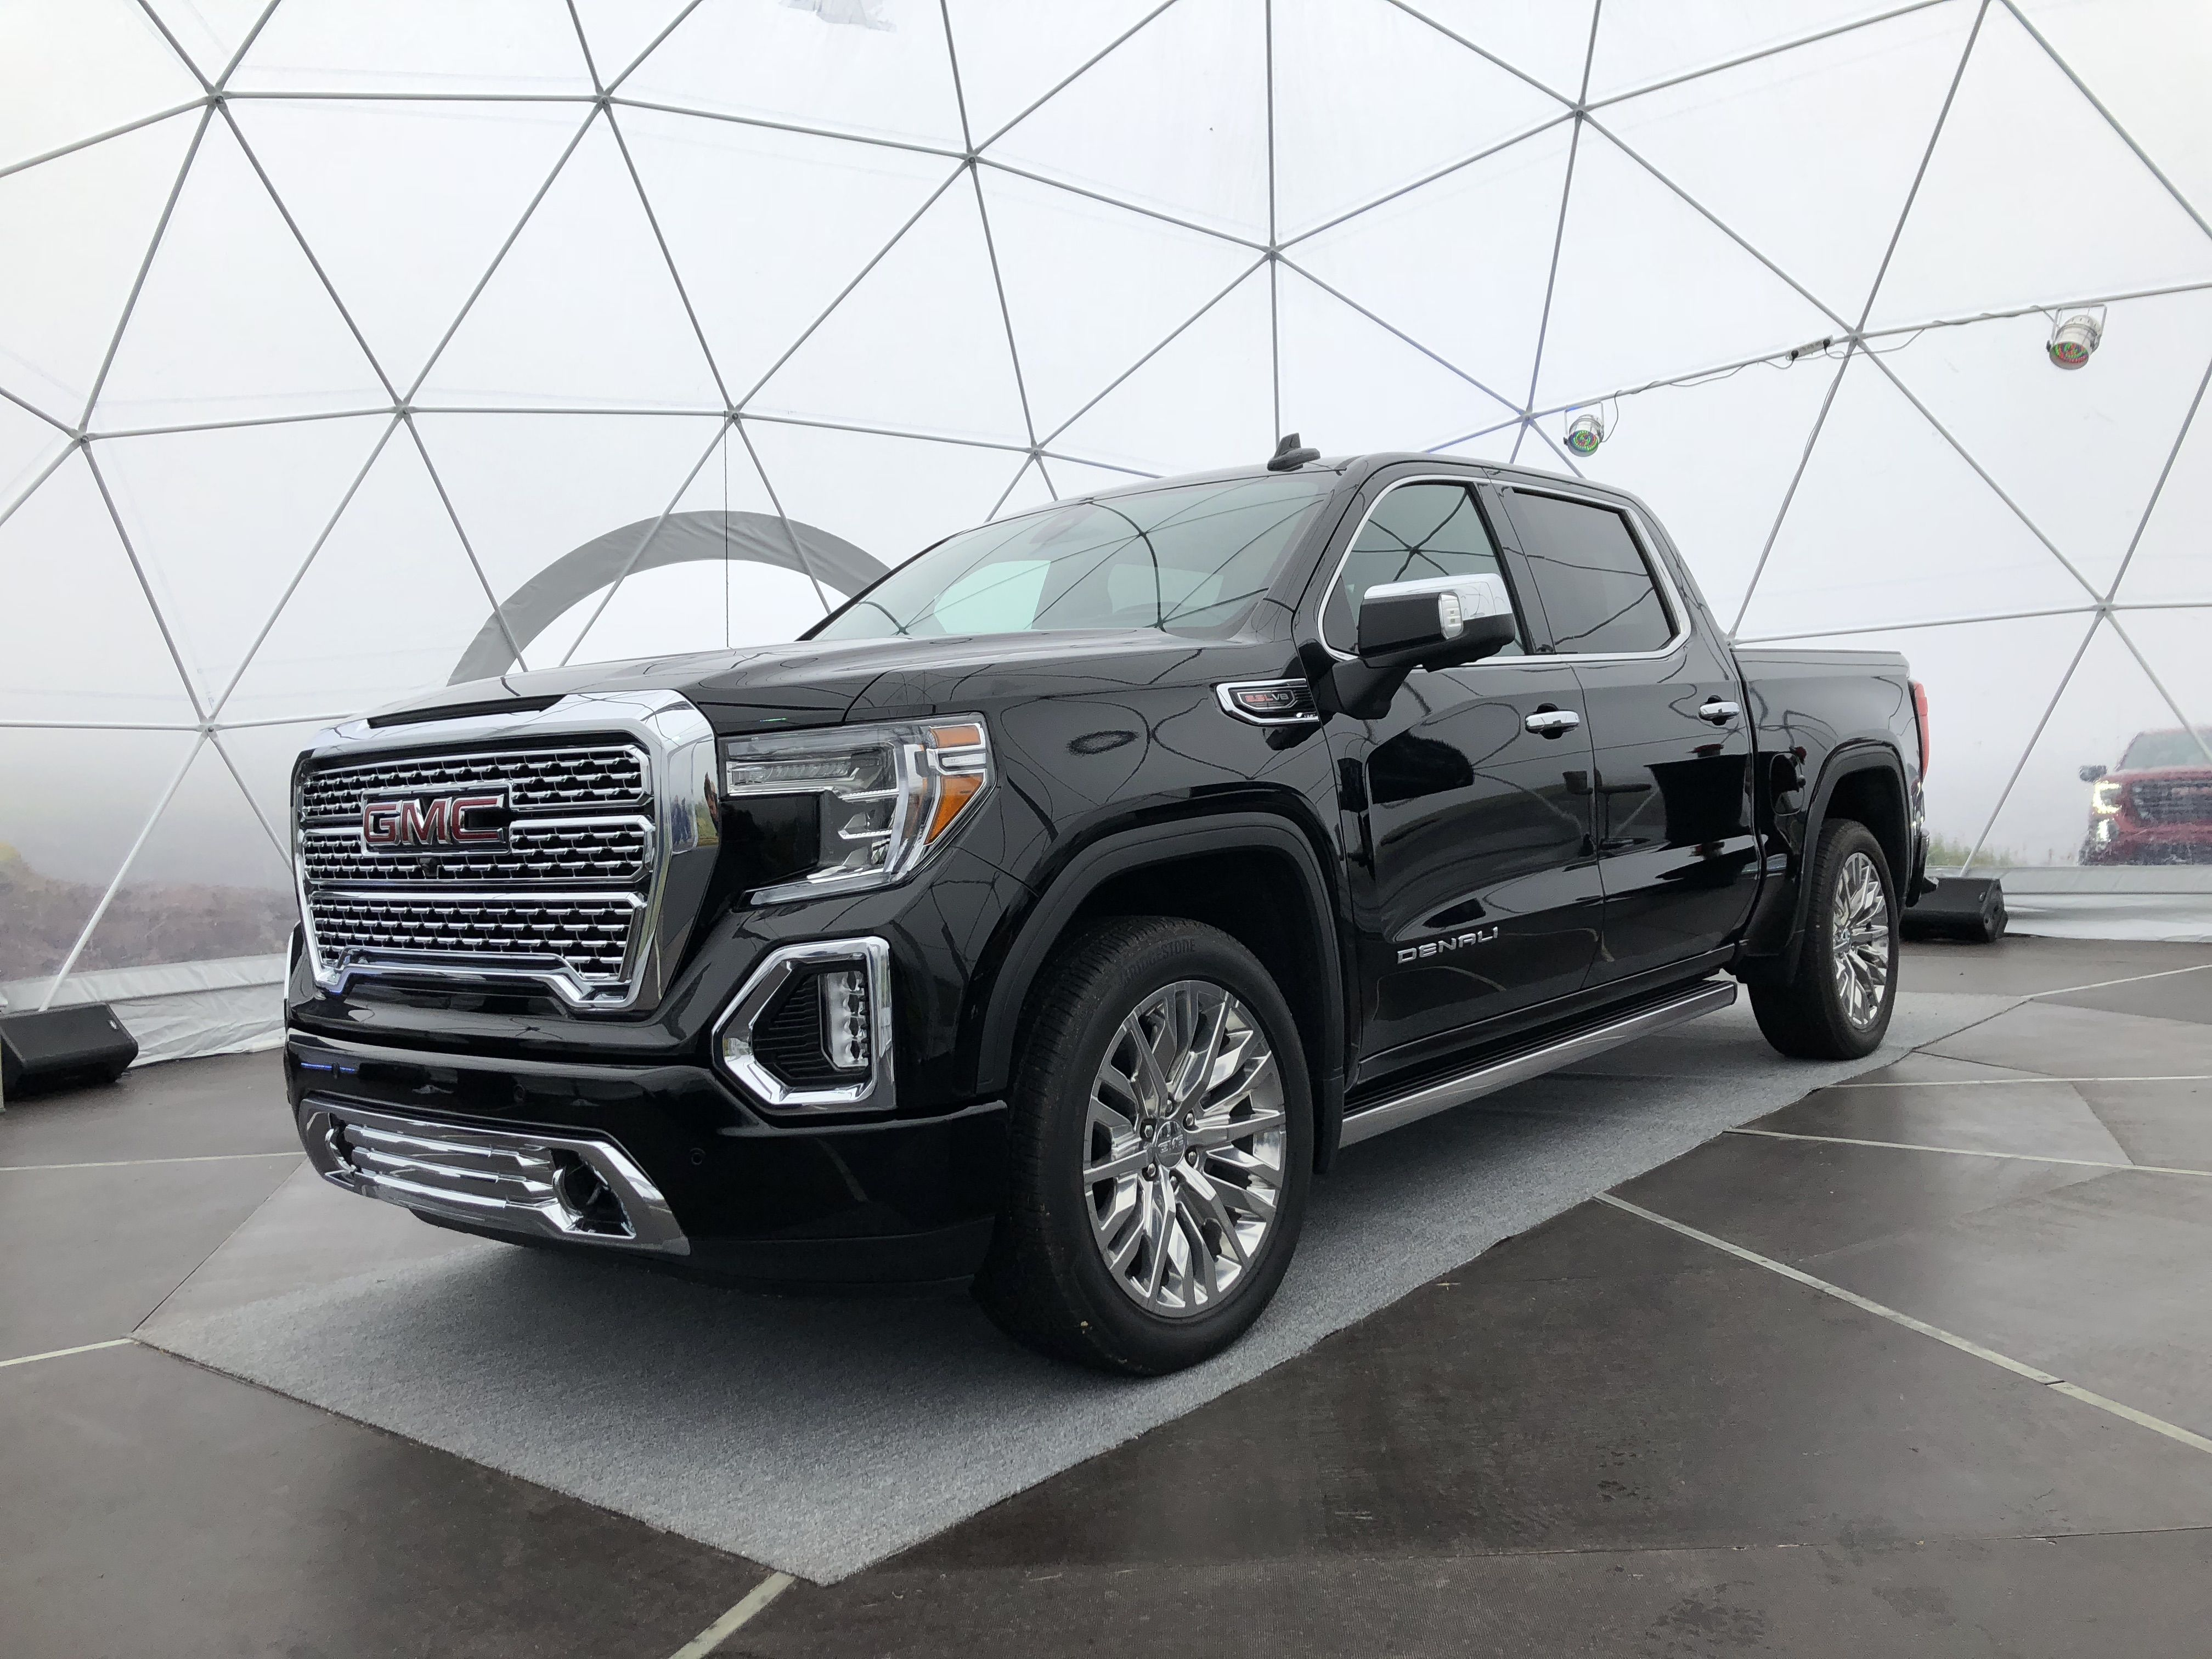 42 New 2019 GMC Sierra 1500 Diesel Performance and New Engine